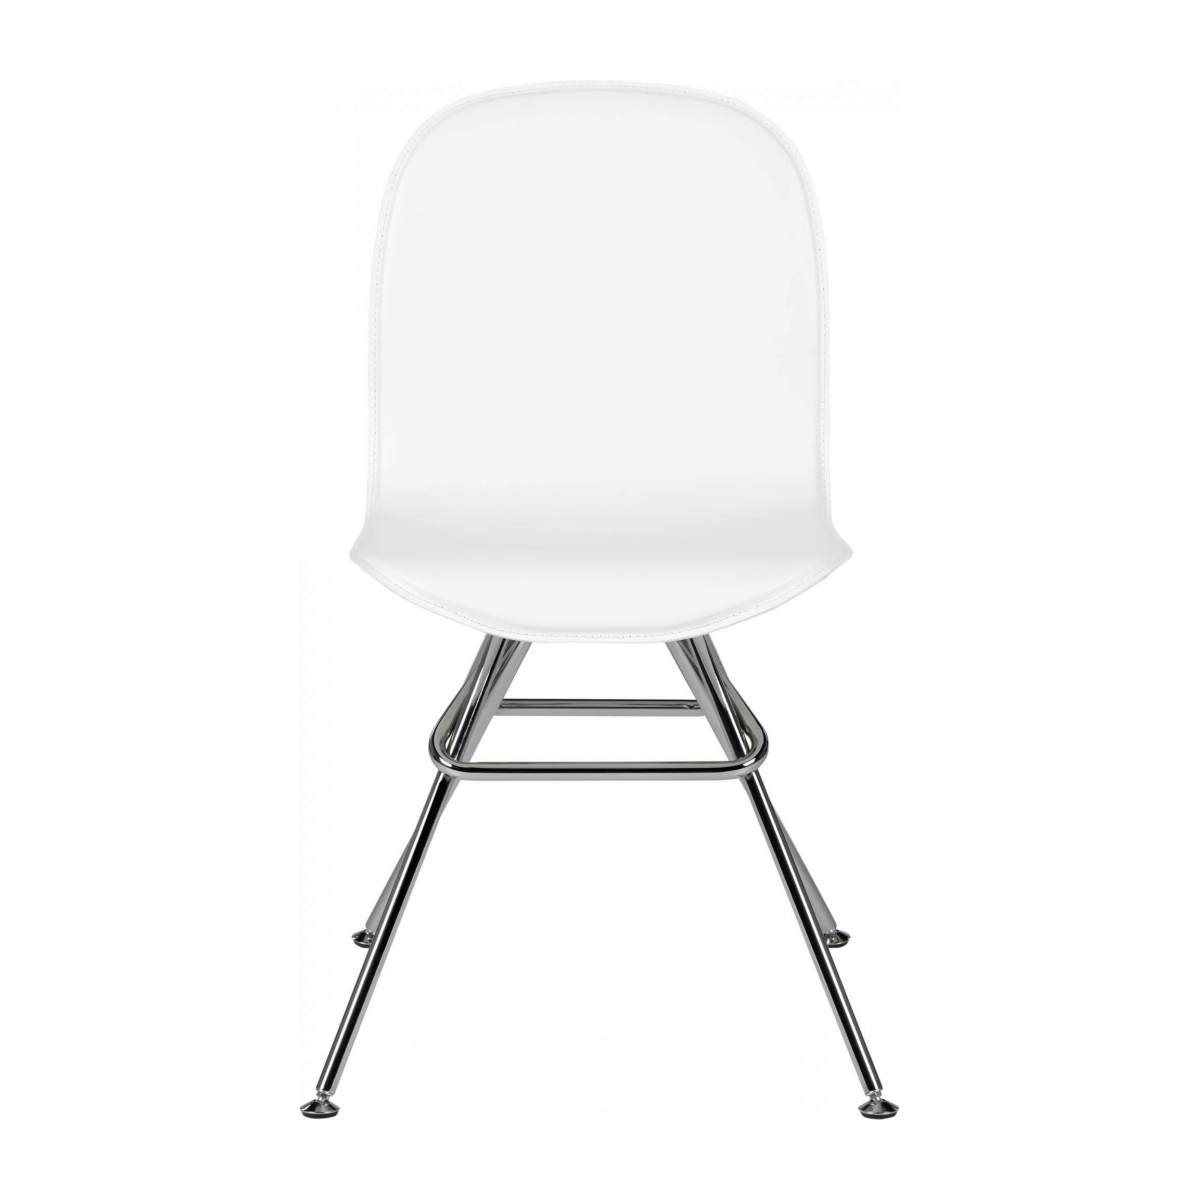 Chair with white faux leather cover and chrome steel legs n°1